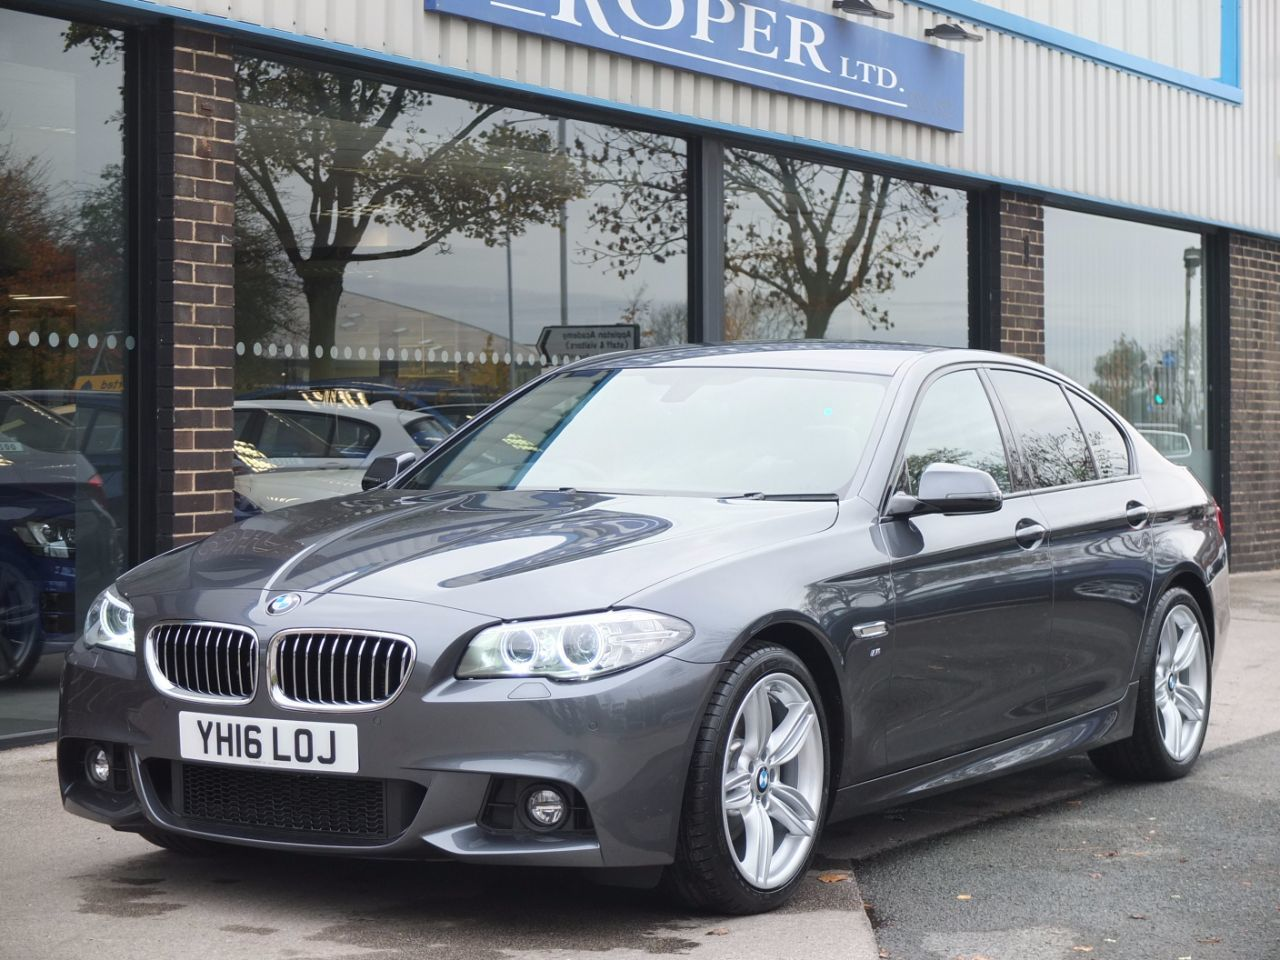 second hand bmw 5 series 520d 190 m sport plus pack auto for sale in bradford west yorkshire. Black Bedroom Furniture Sets. Home Design Ideas